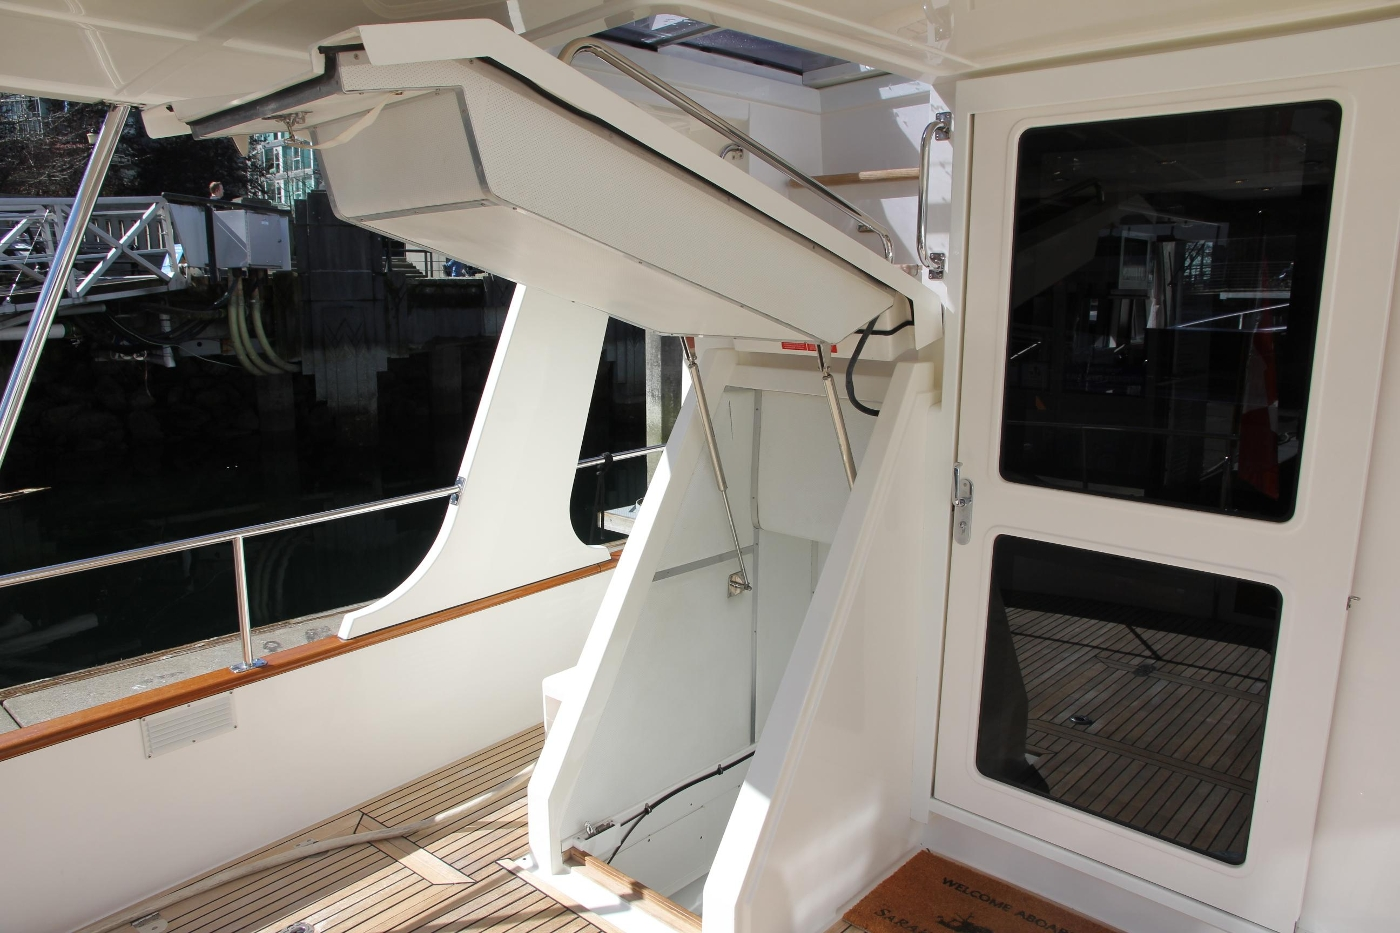 2009 Grand Banks 47 Europa, Engine Room Access